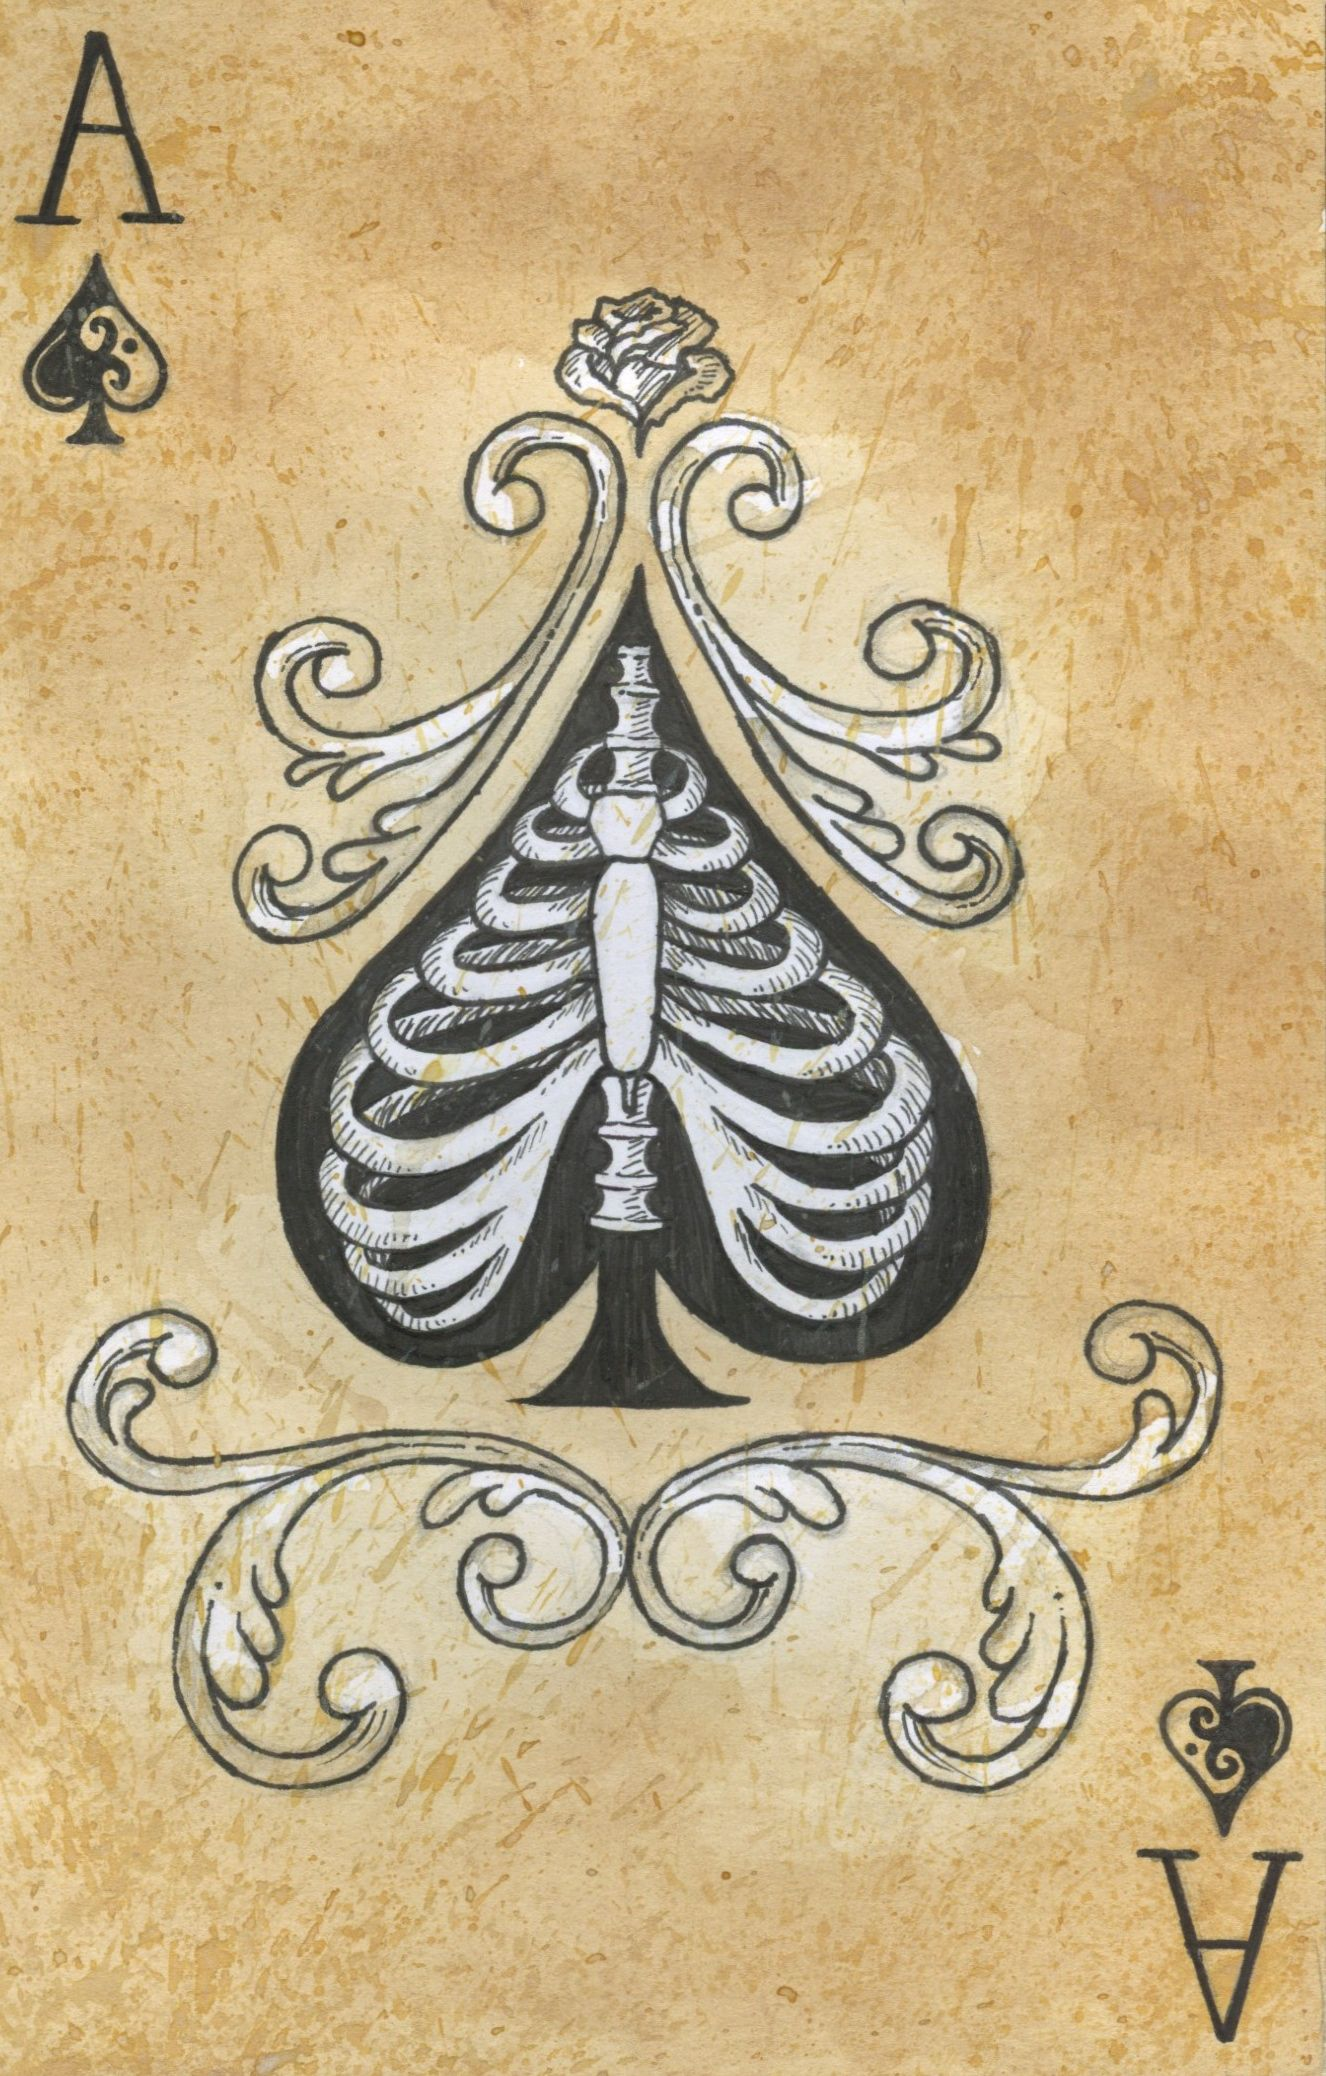 Pin by Kim Vincent on Ink | Card tattoo, Ace of spades